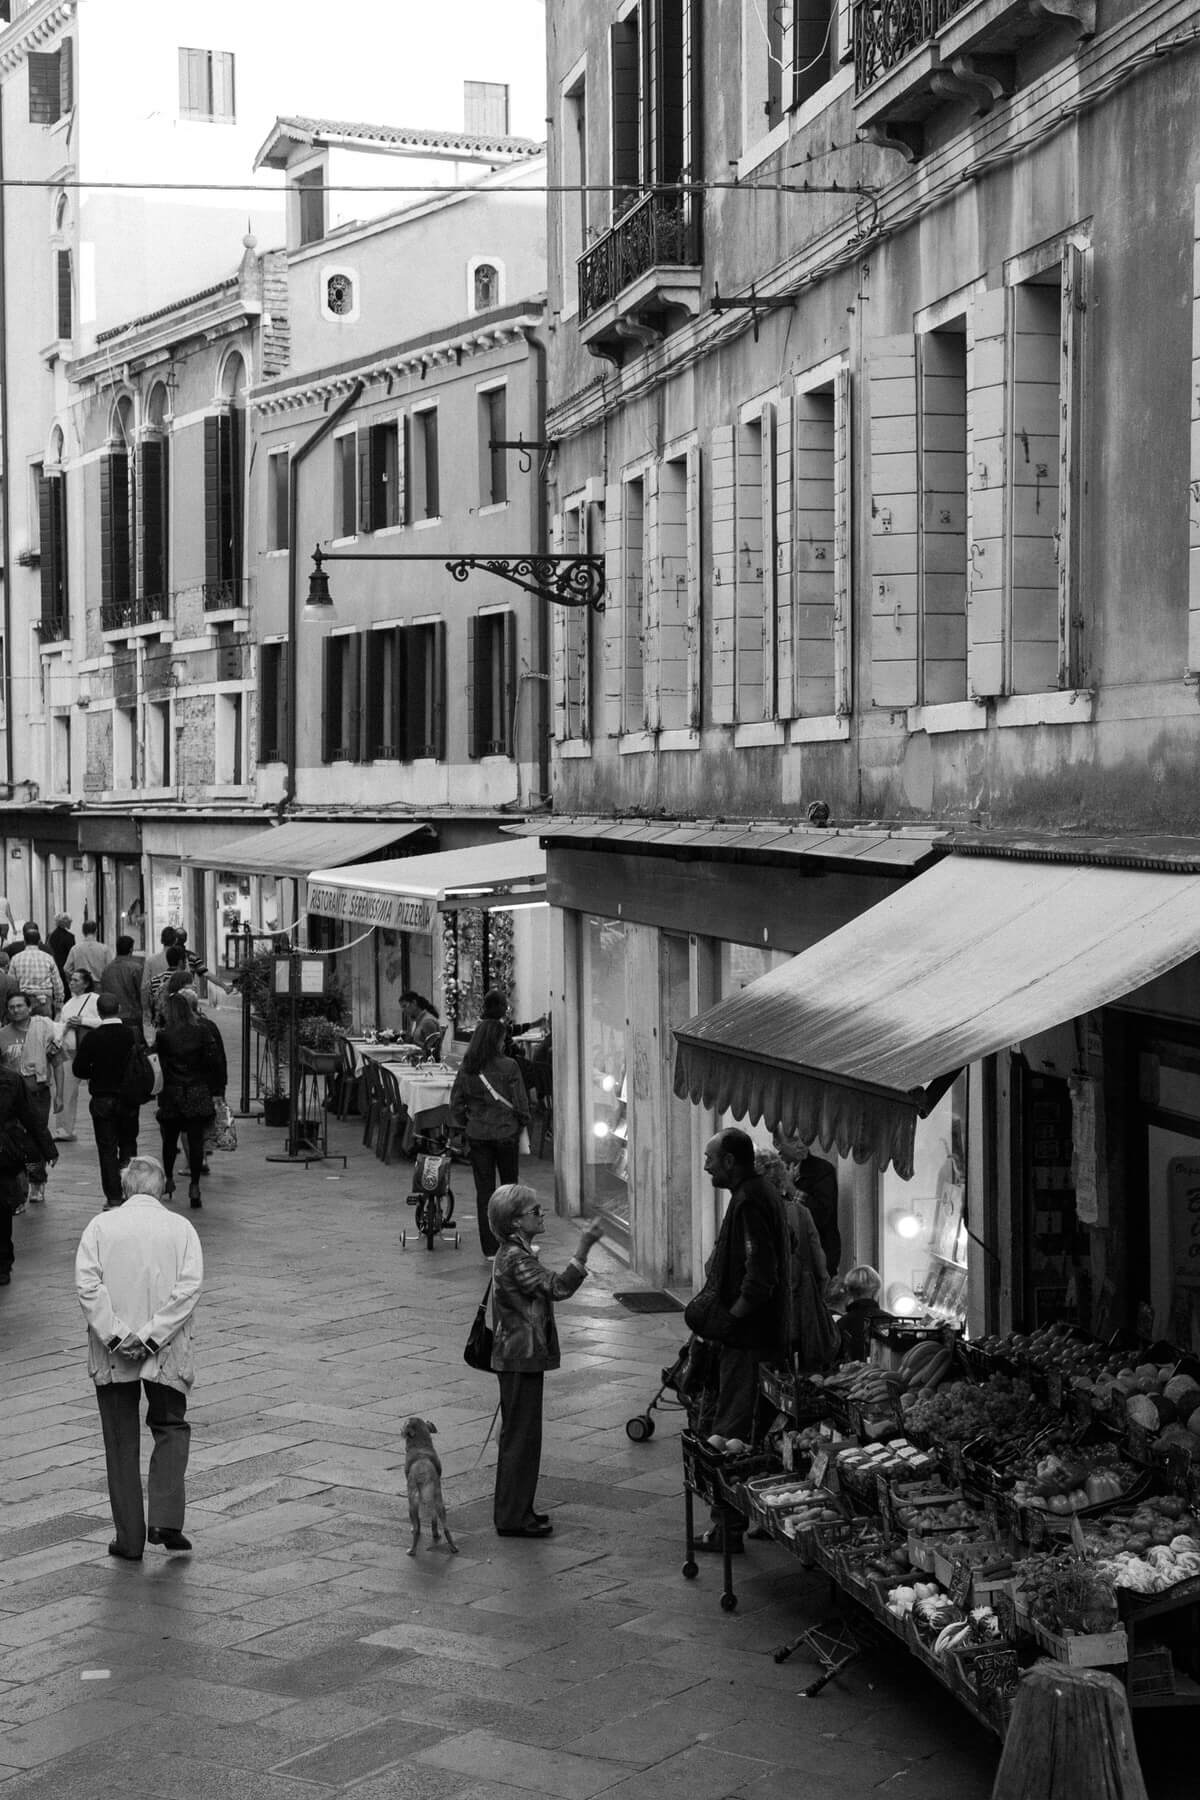 Venice-Italy-black-and-white-fine-art-photography-by-Studio-L-photographer-Laura-Schneider-_3819